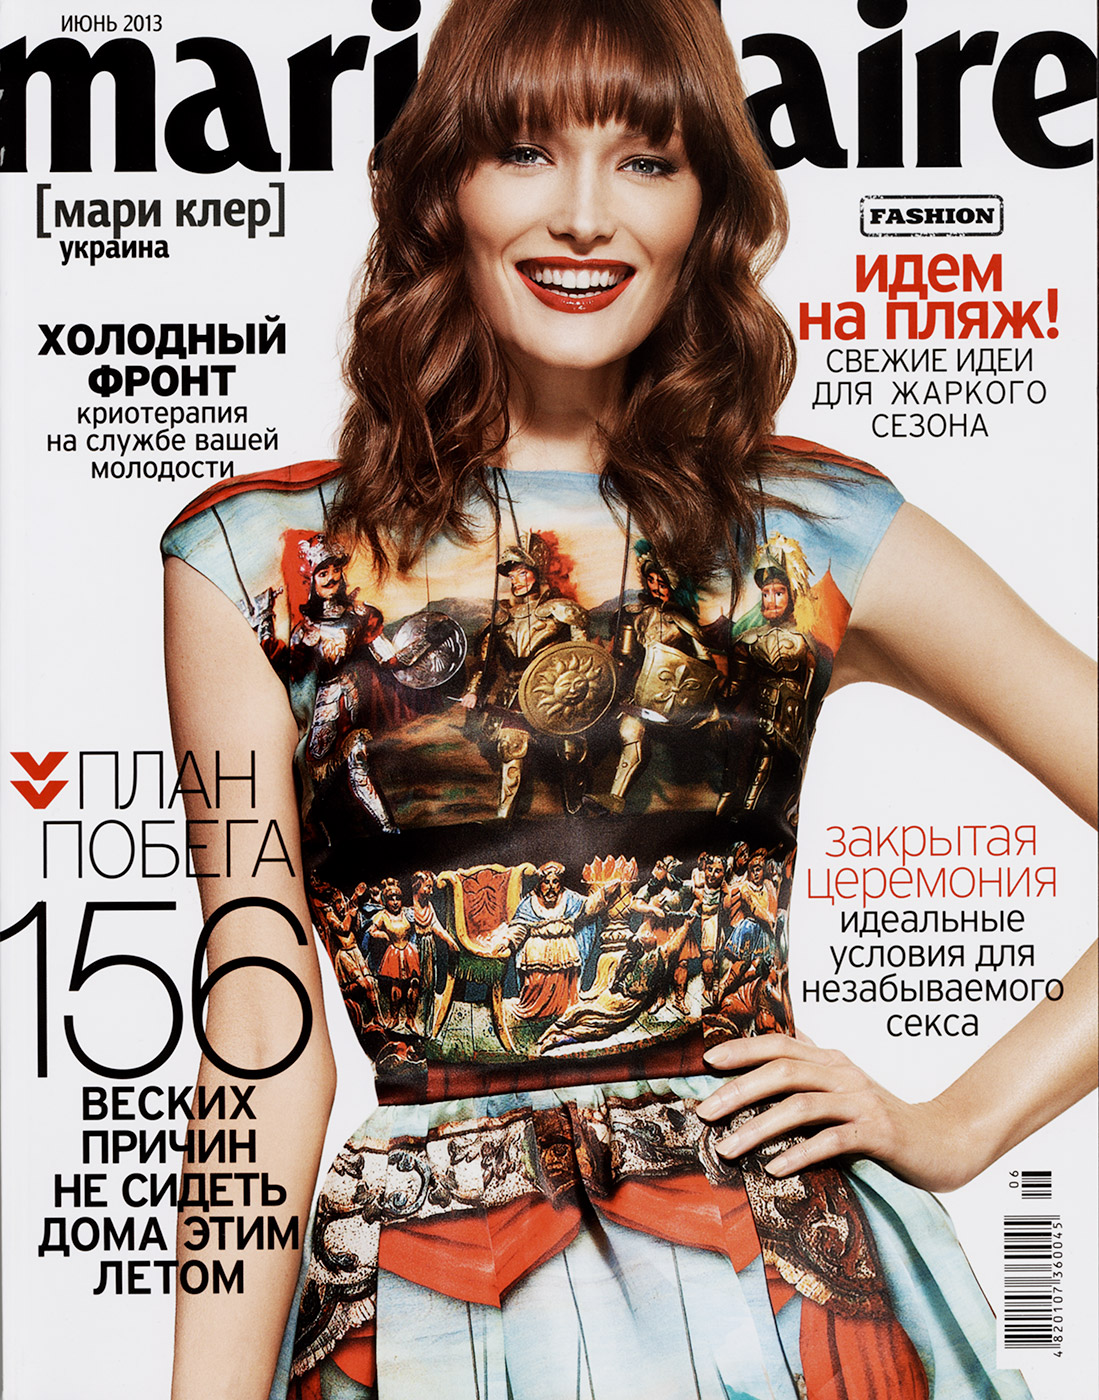 marie-claire-cover.jpg